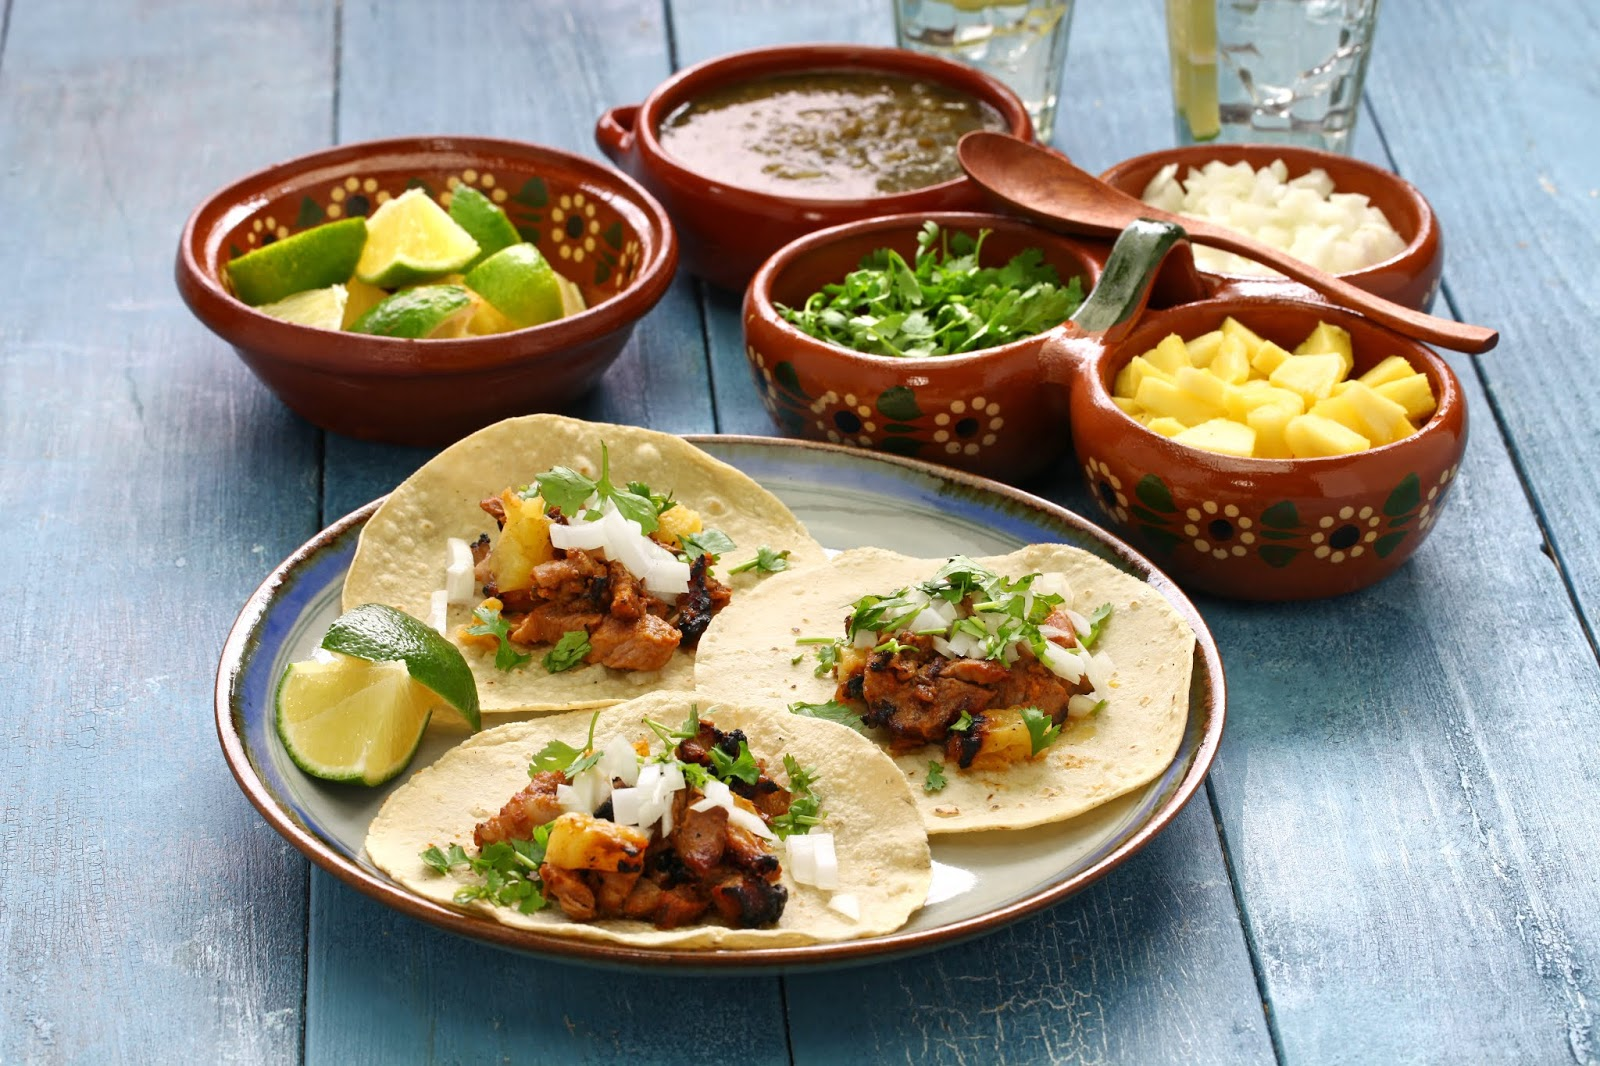 Celebrate Cinco de Mayo at Home with bartaco